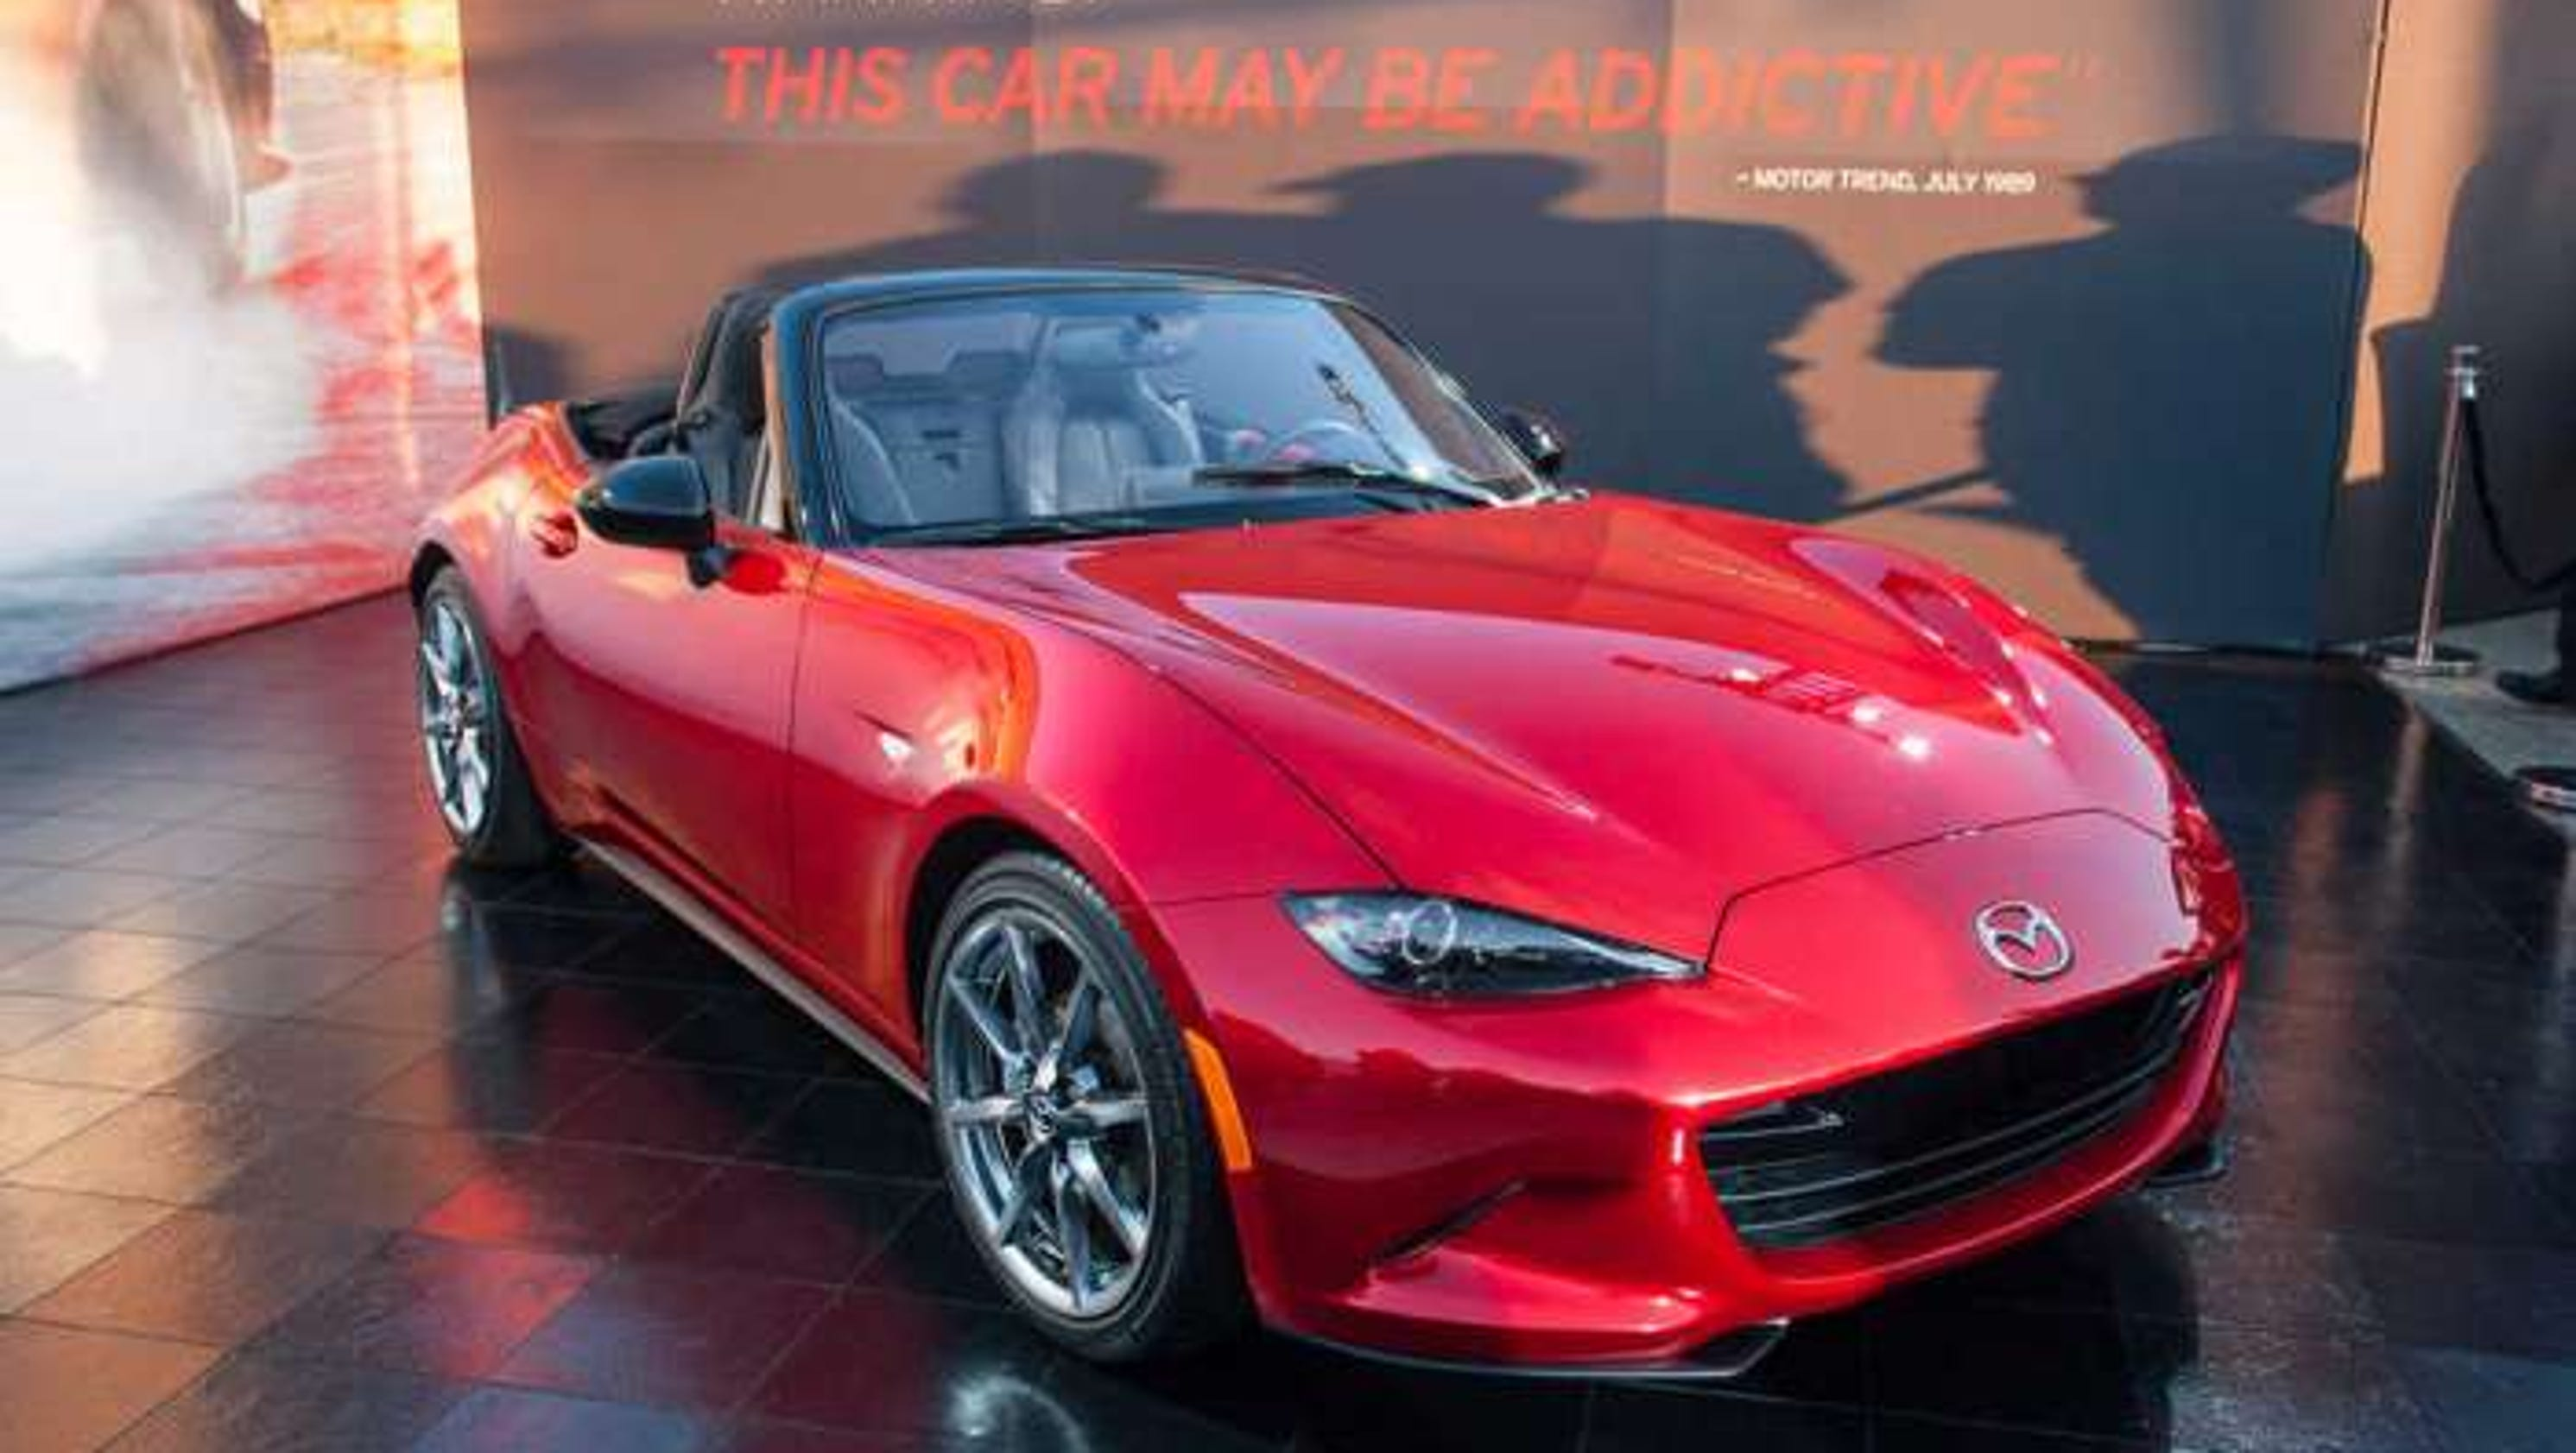 than is shakedown mazda ever makeover baller all krystyna miata new lagowski now its the s true mx more it